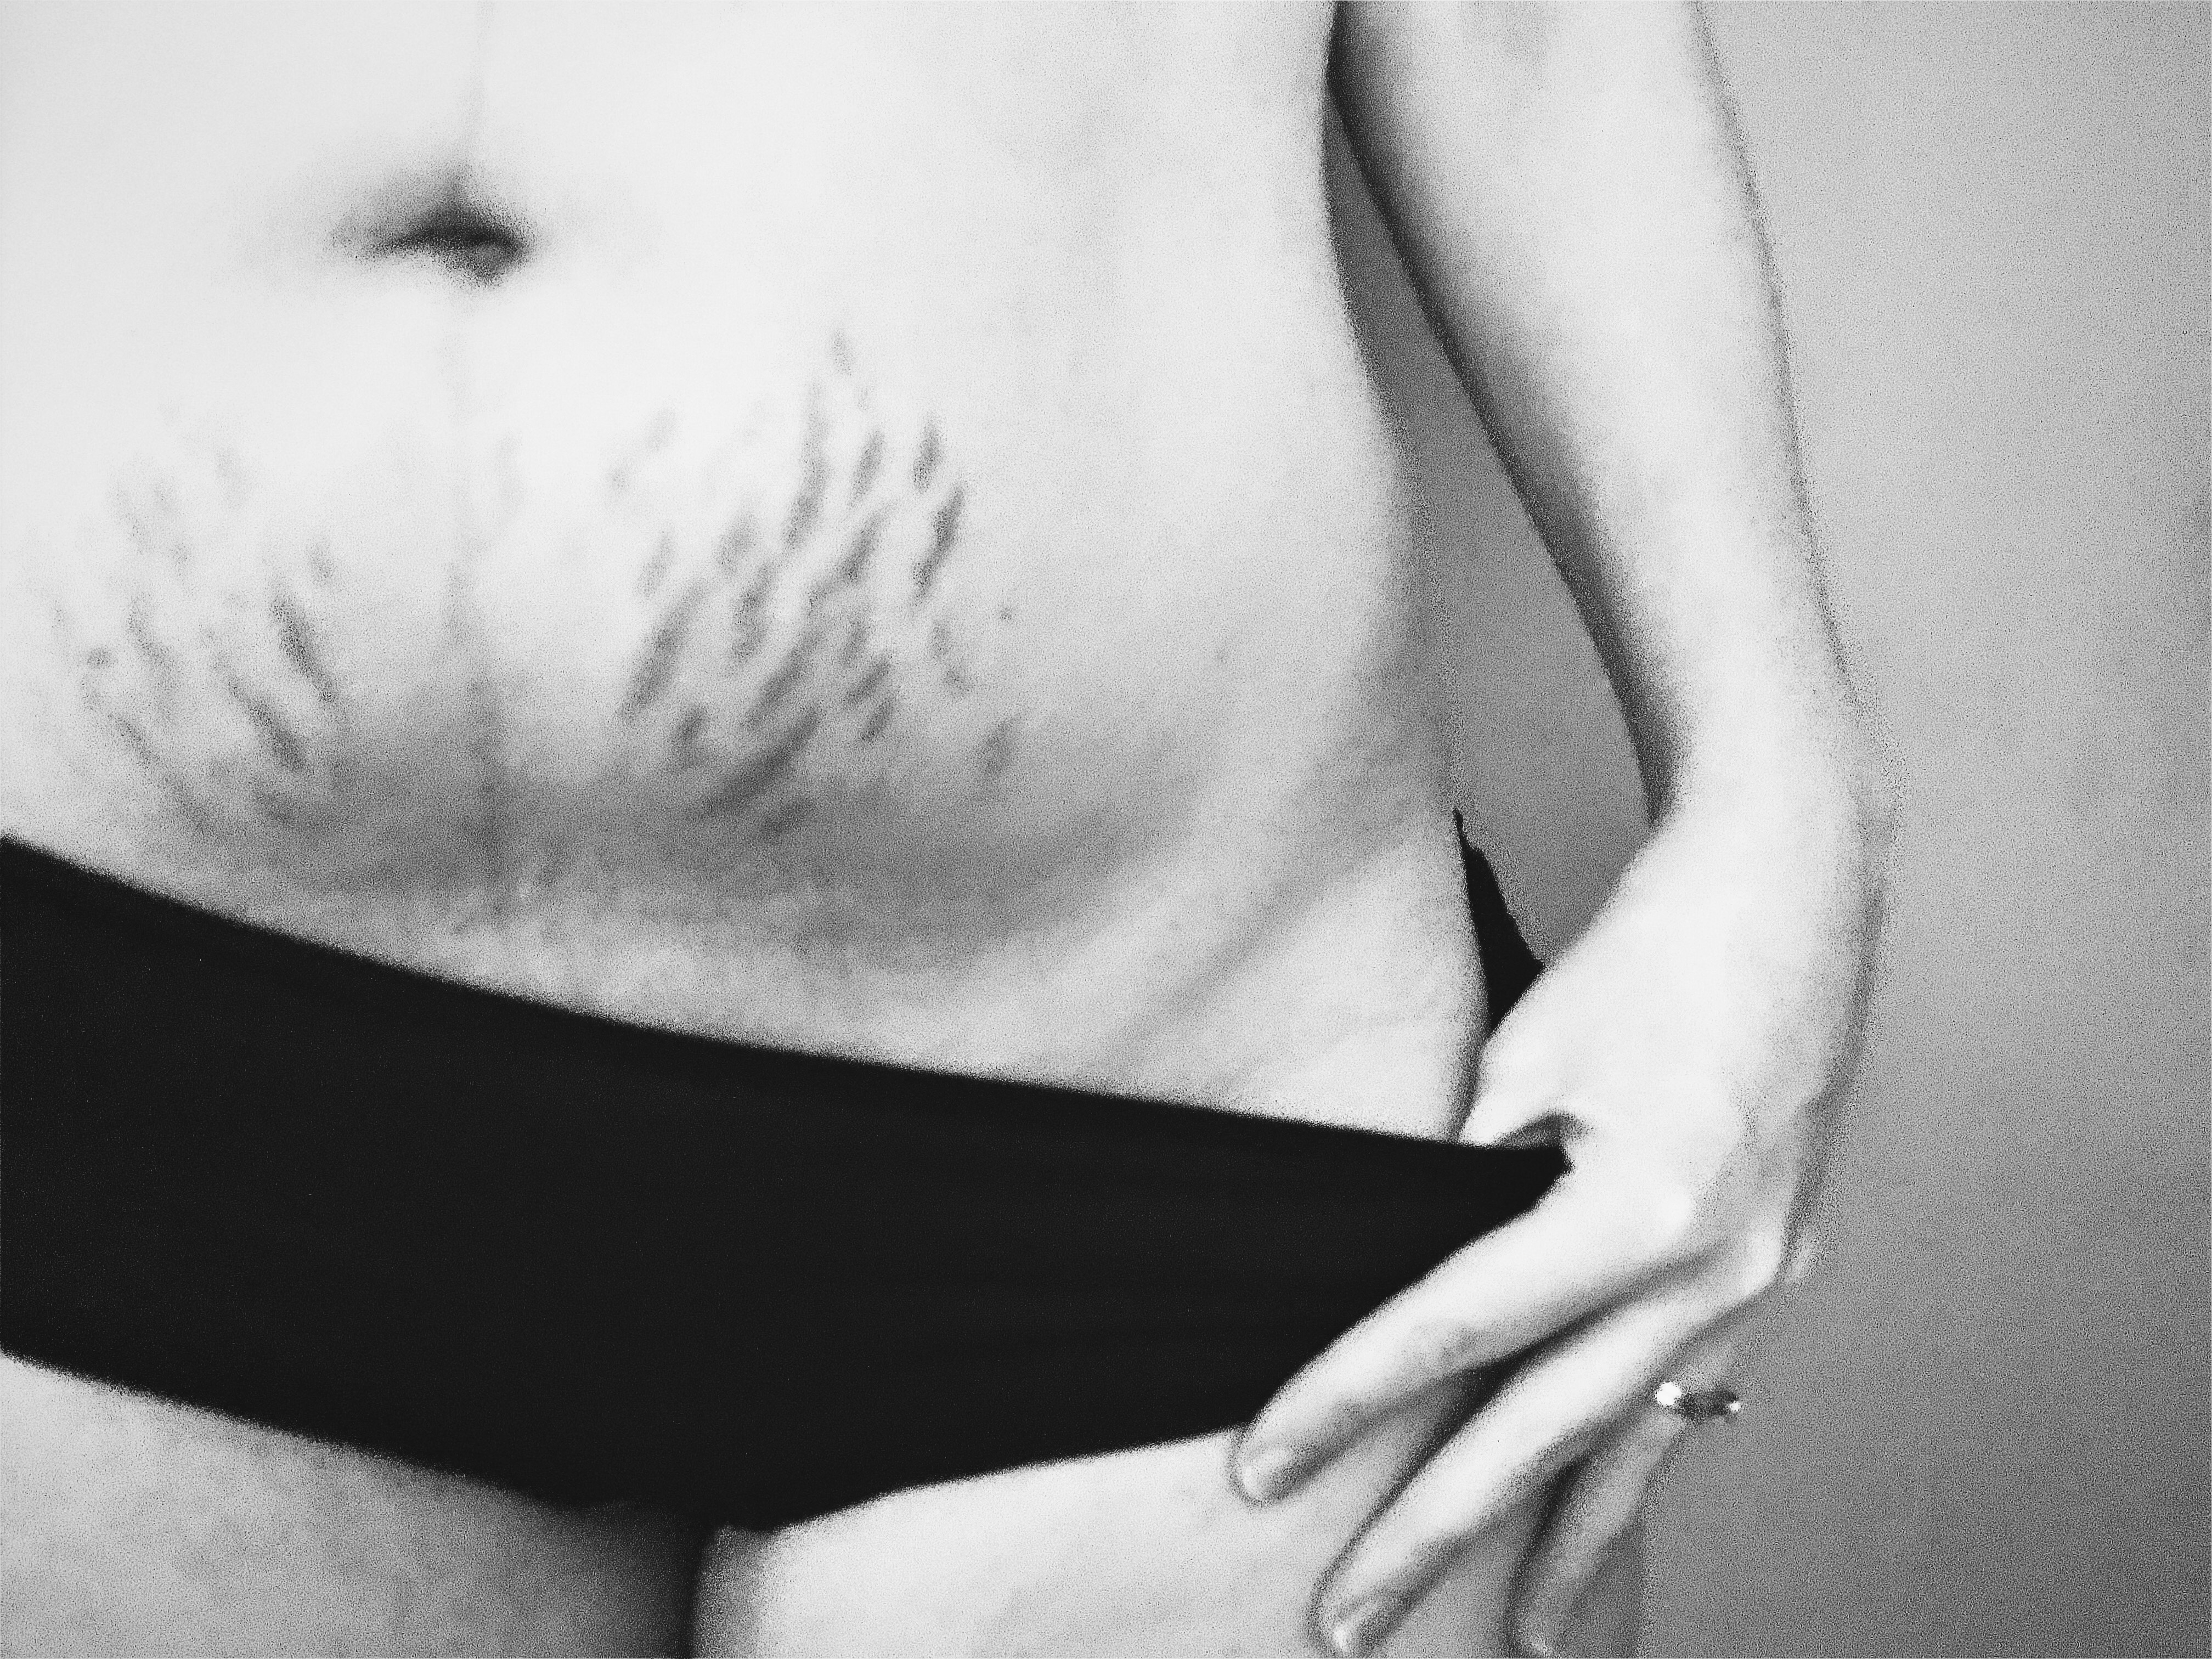 A black and white image of my lower abdomen, showing dark stretch marks on either side of my belly button and a dark linea nigra up the centre. I am wearing simple black knickers and my left hand is pulling down the side.